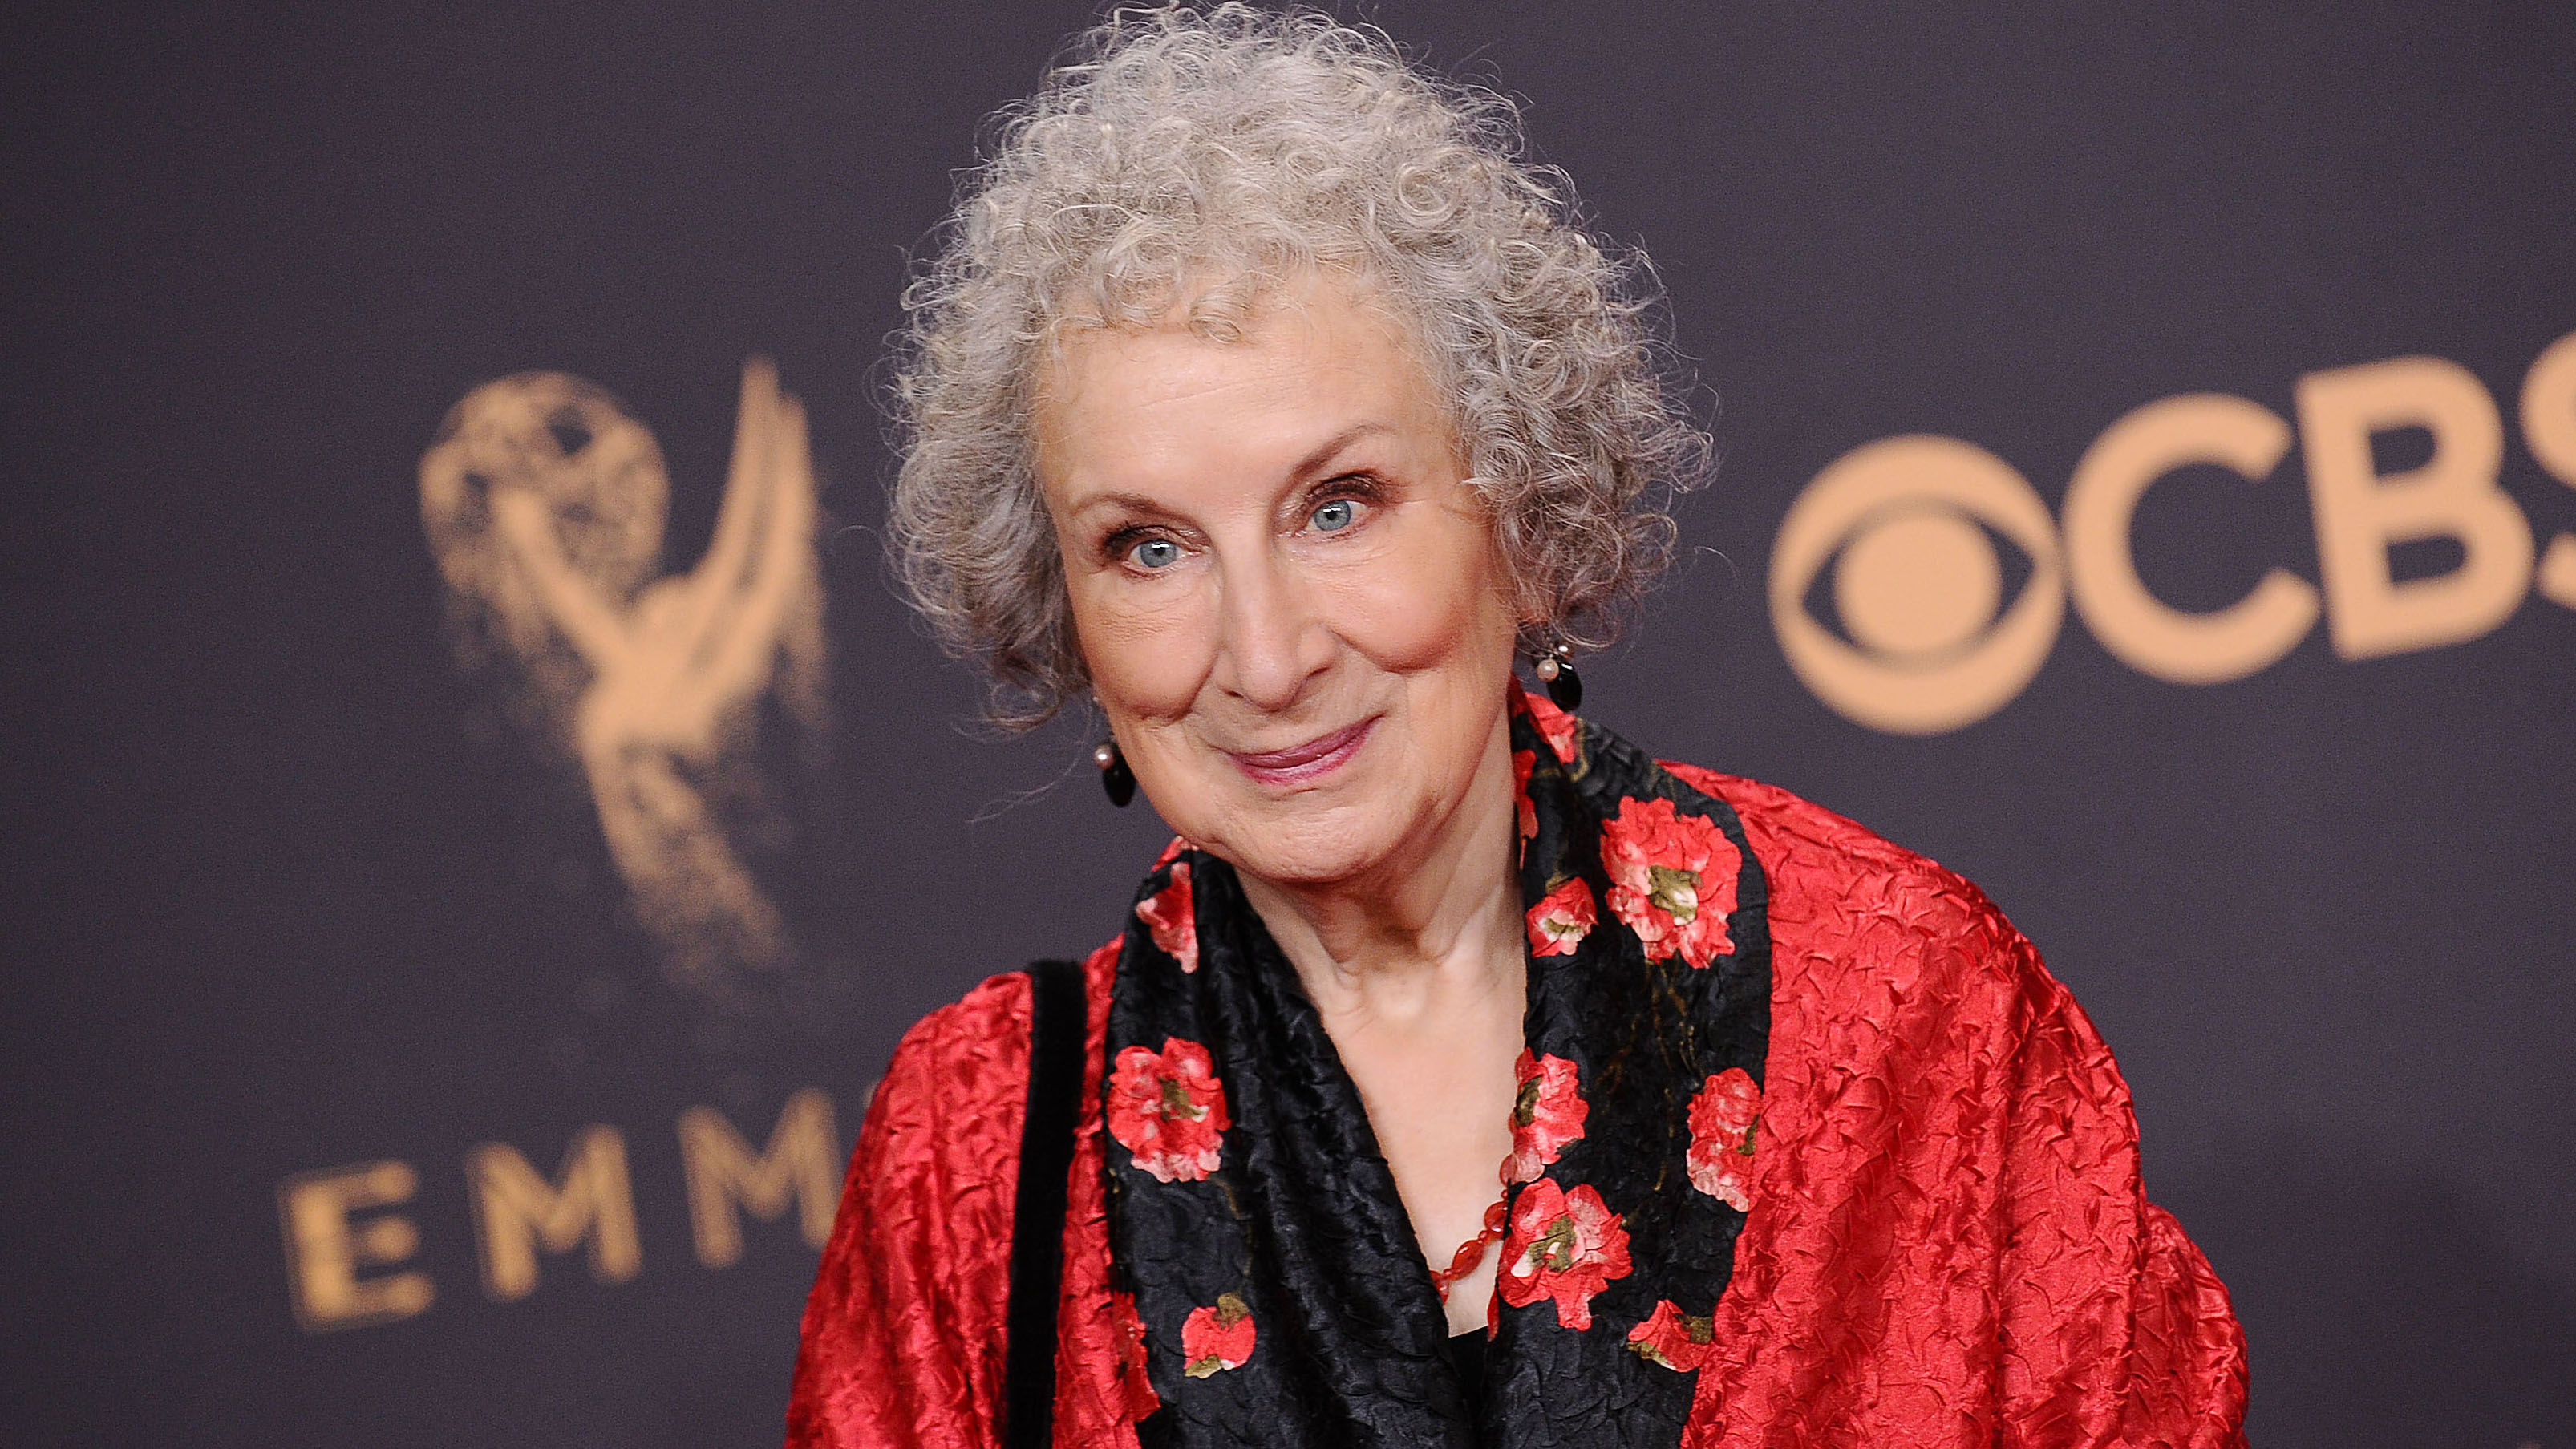 Margaret Atwood takes to Twitter to defend #MeToo op-ed